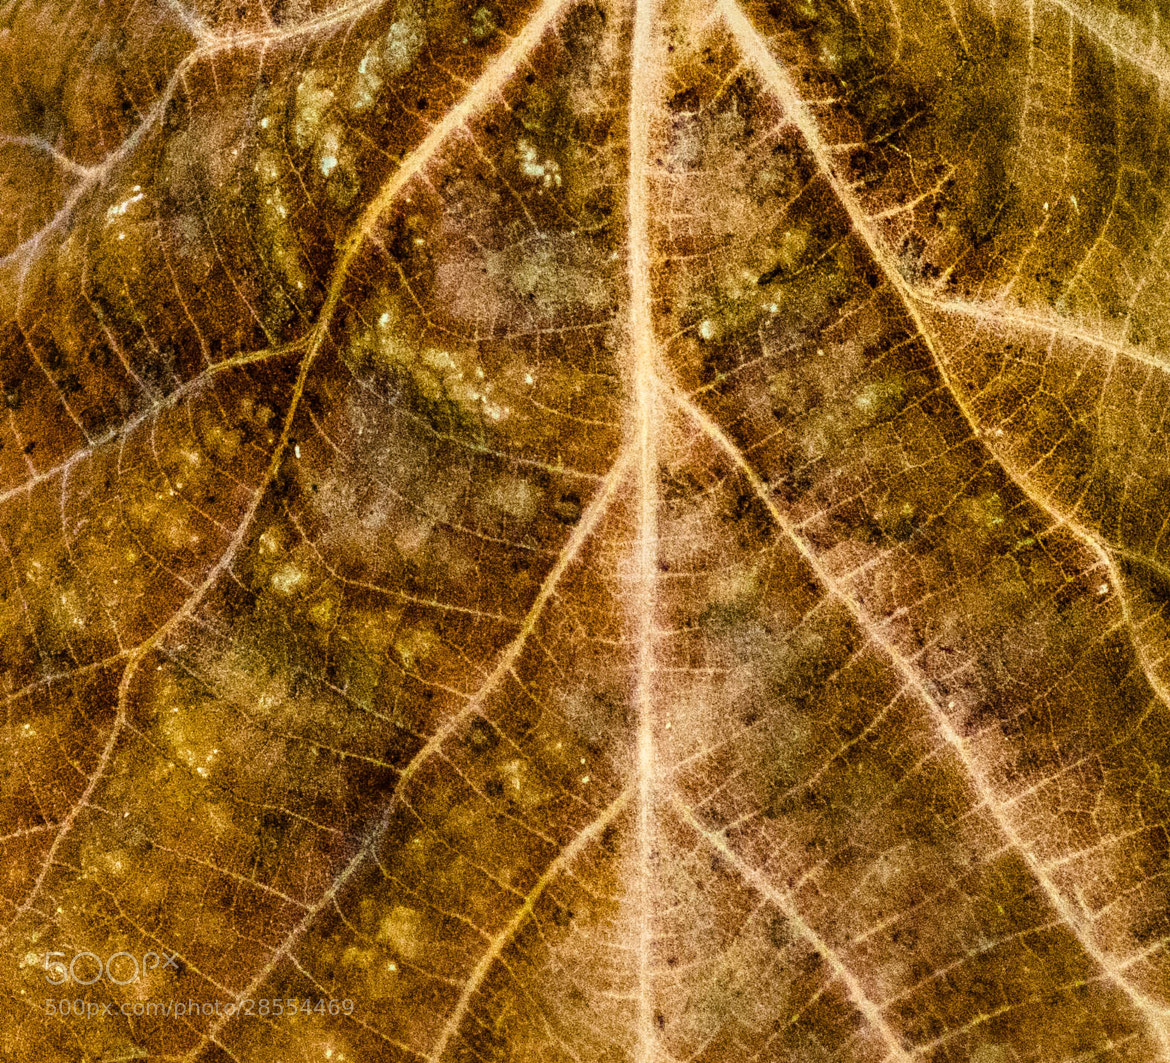 Photograph Leaf by julian john on 500px